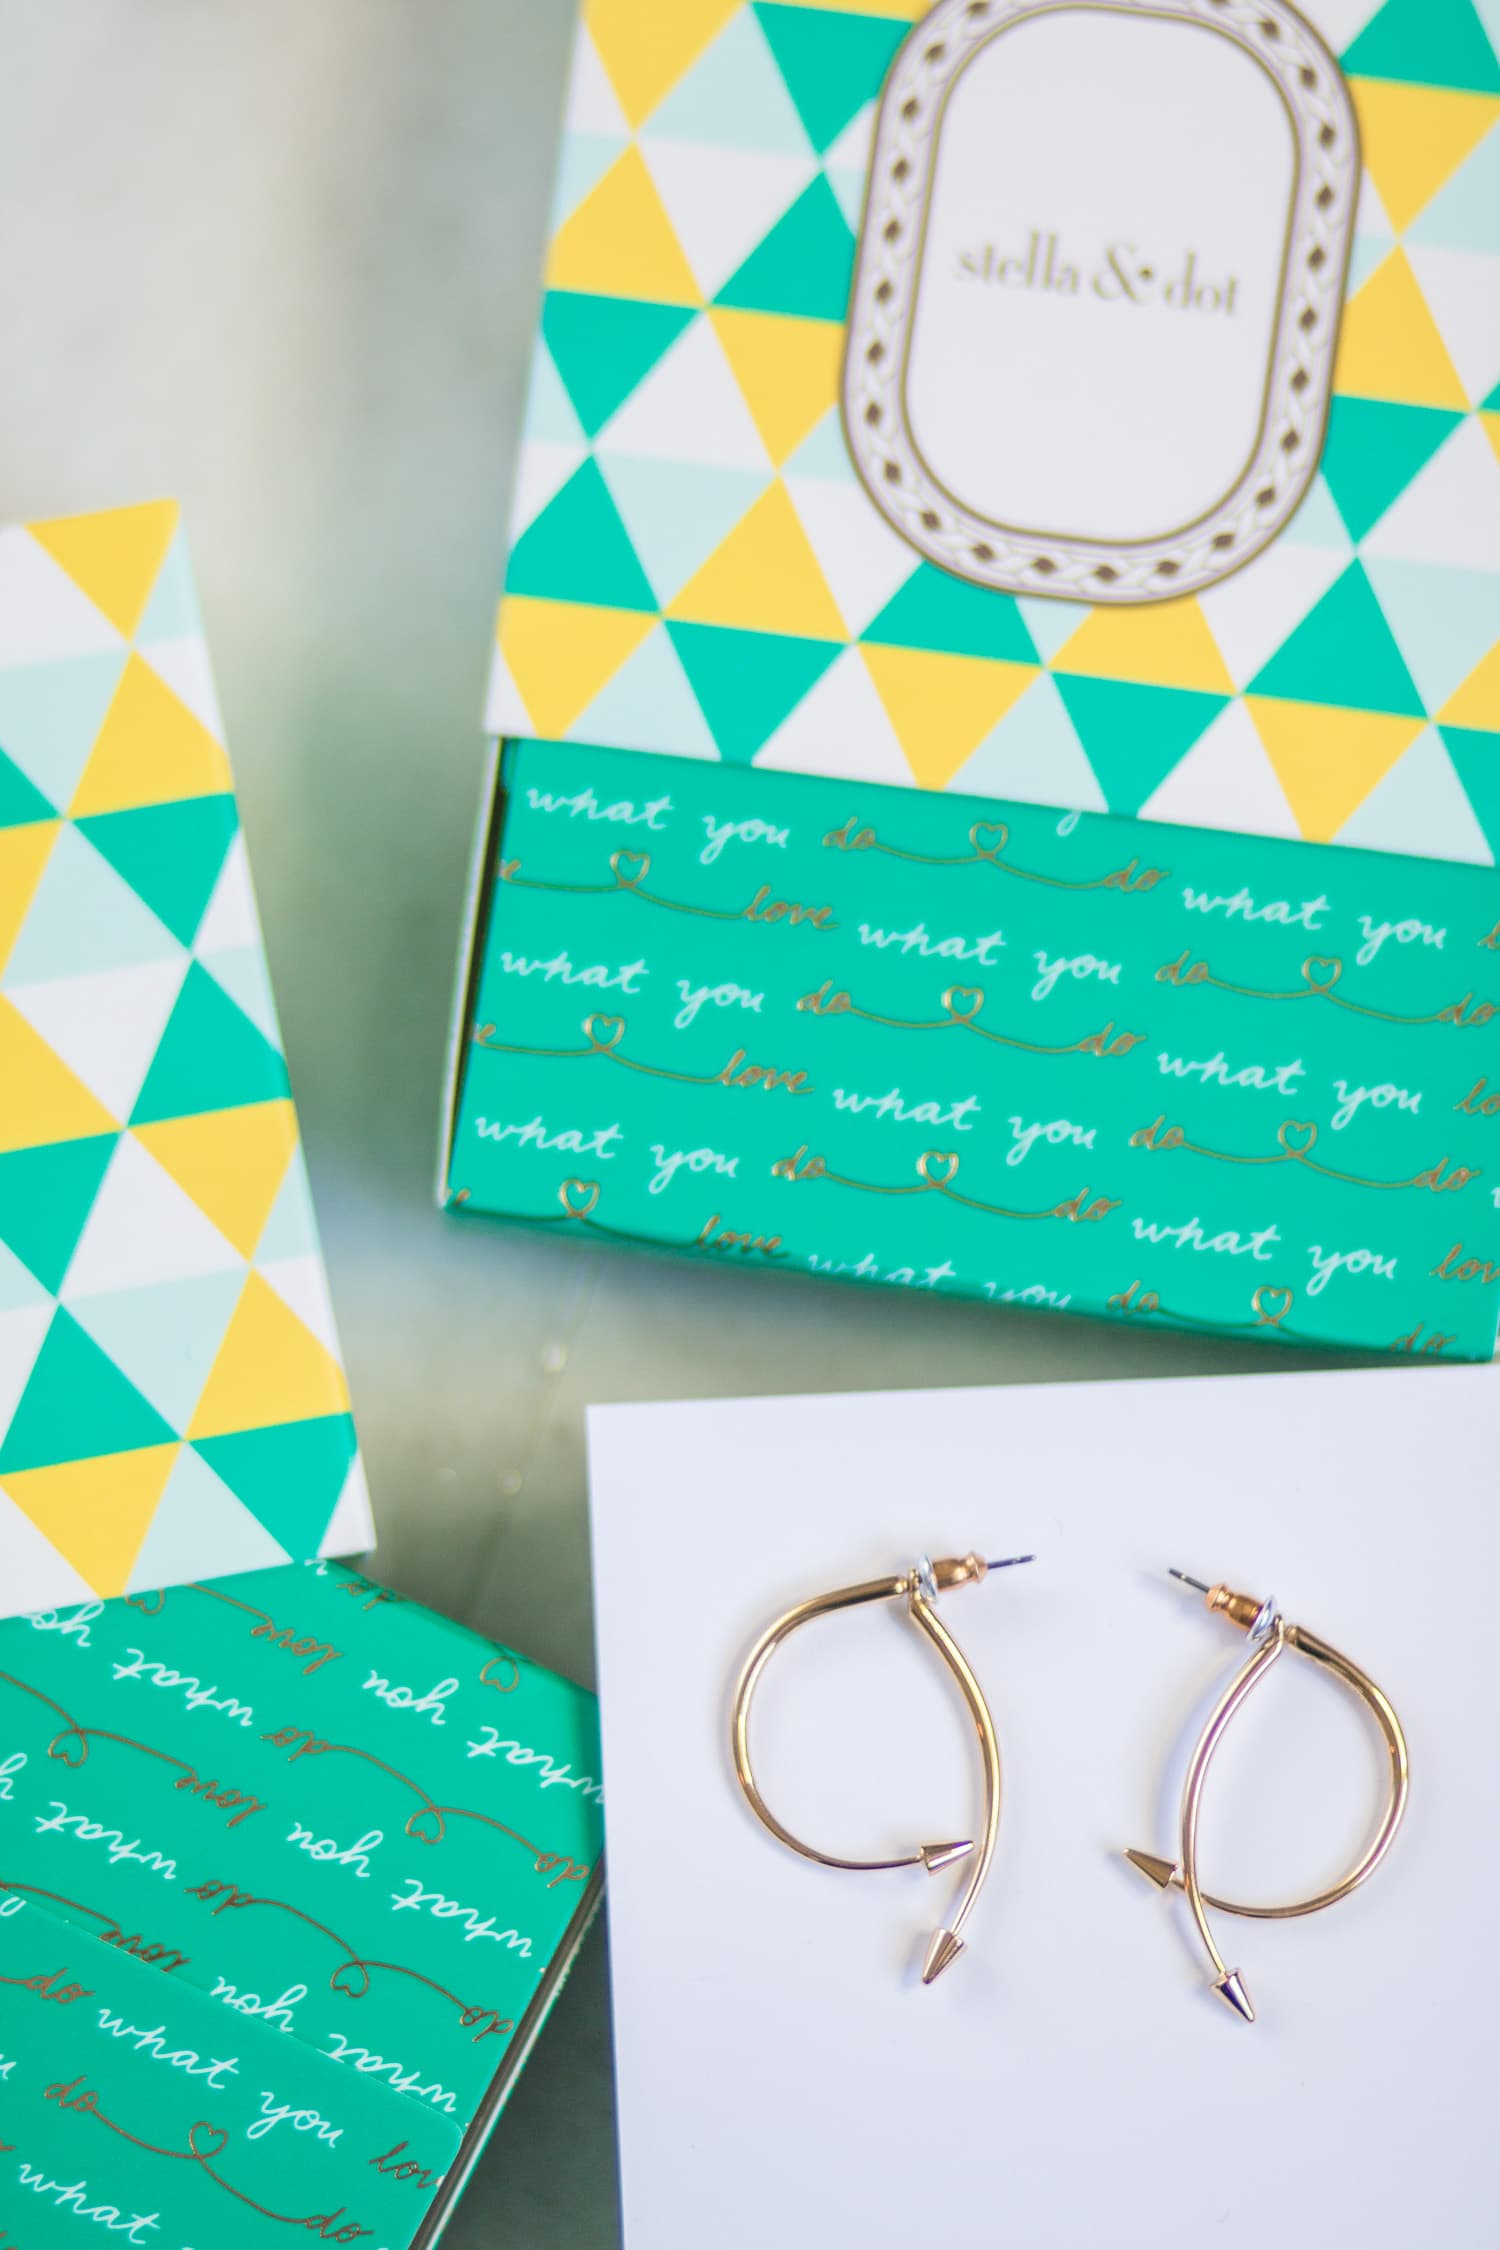 A review of the Stella & Dot fall collection - including the gold Winding Arrow Earrings - by style blogger Ashley Brooke Nicholas